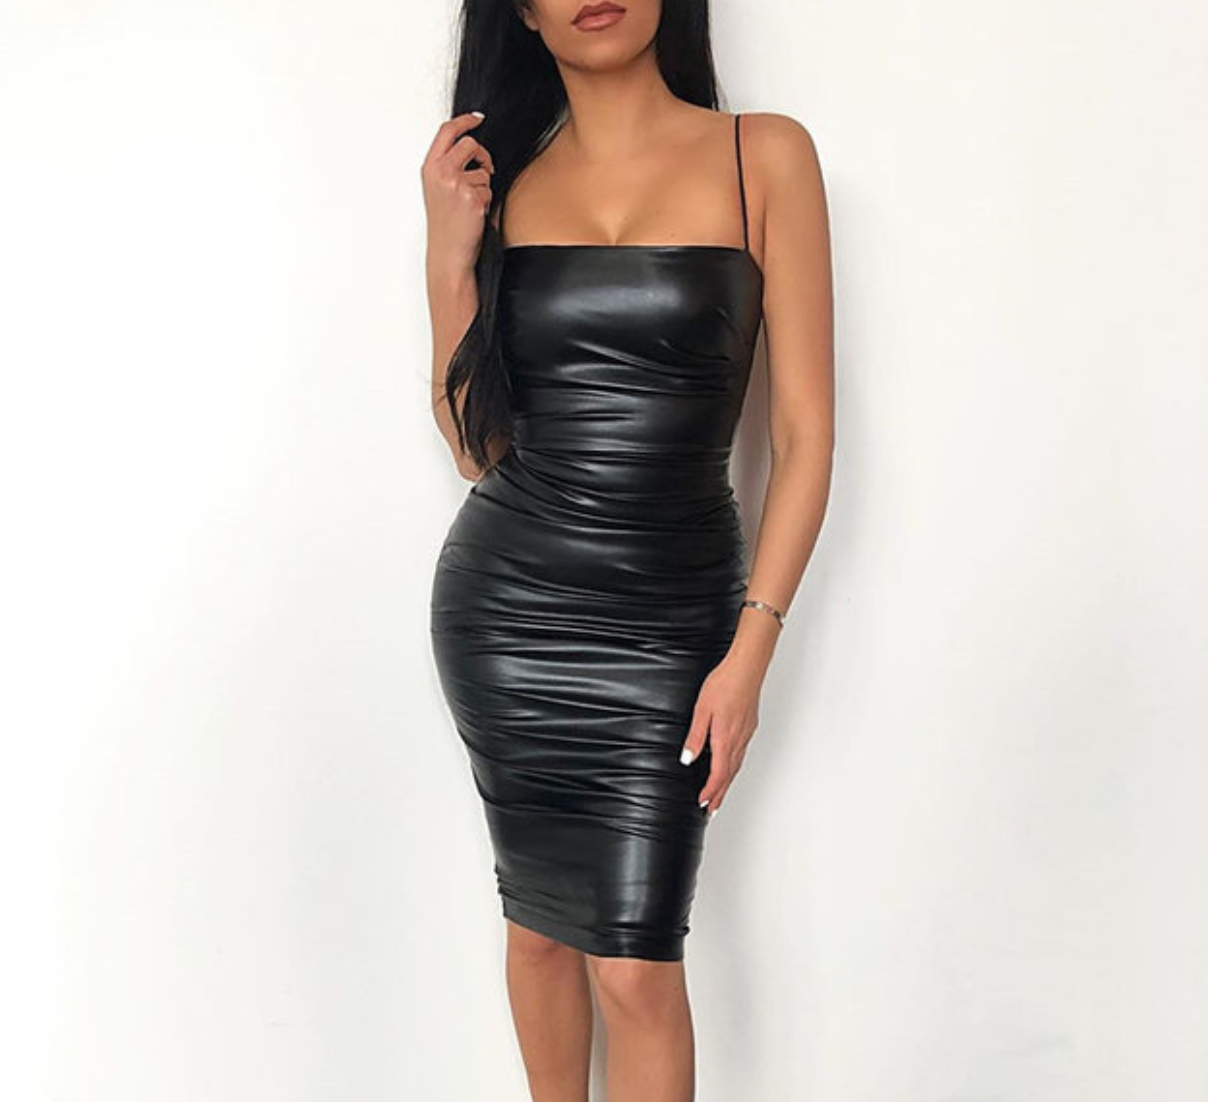 Extra-Tight & Sensual dress